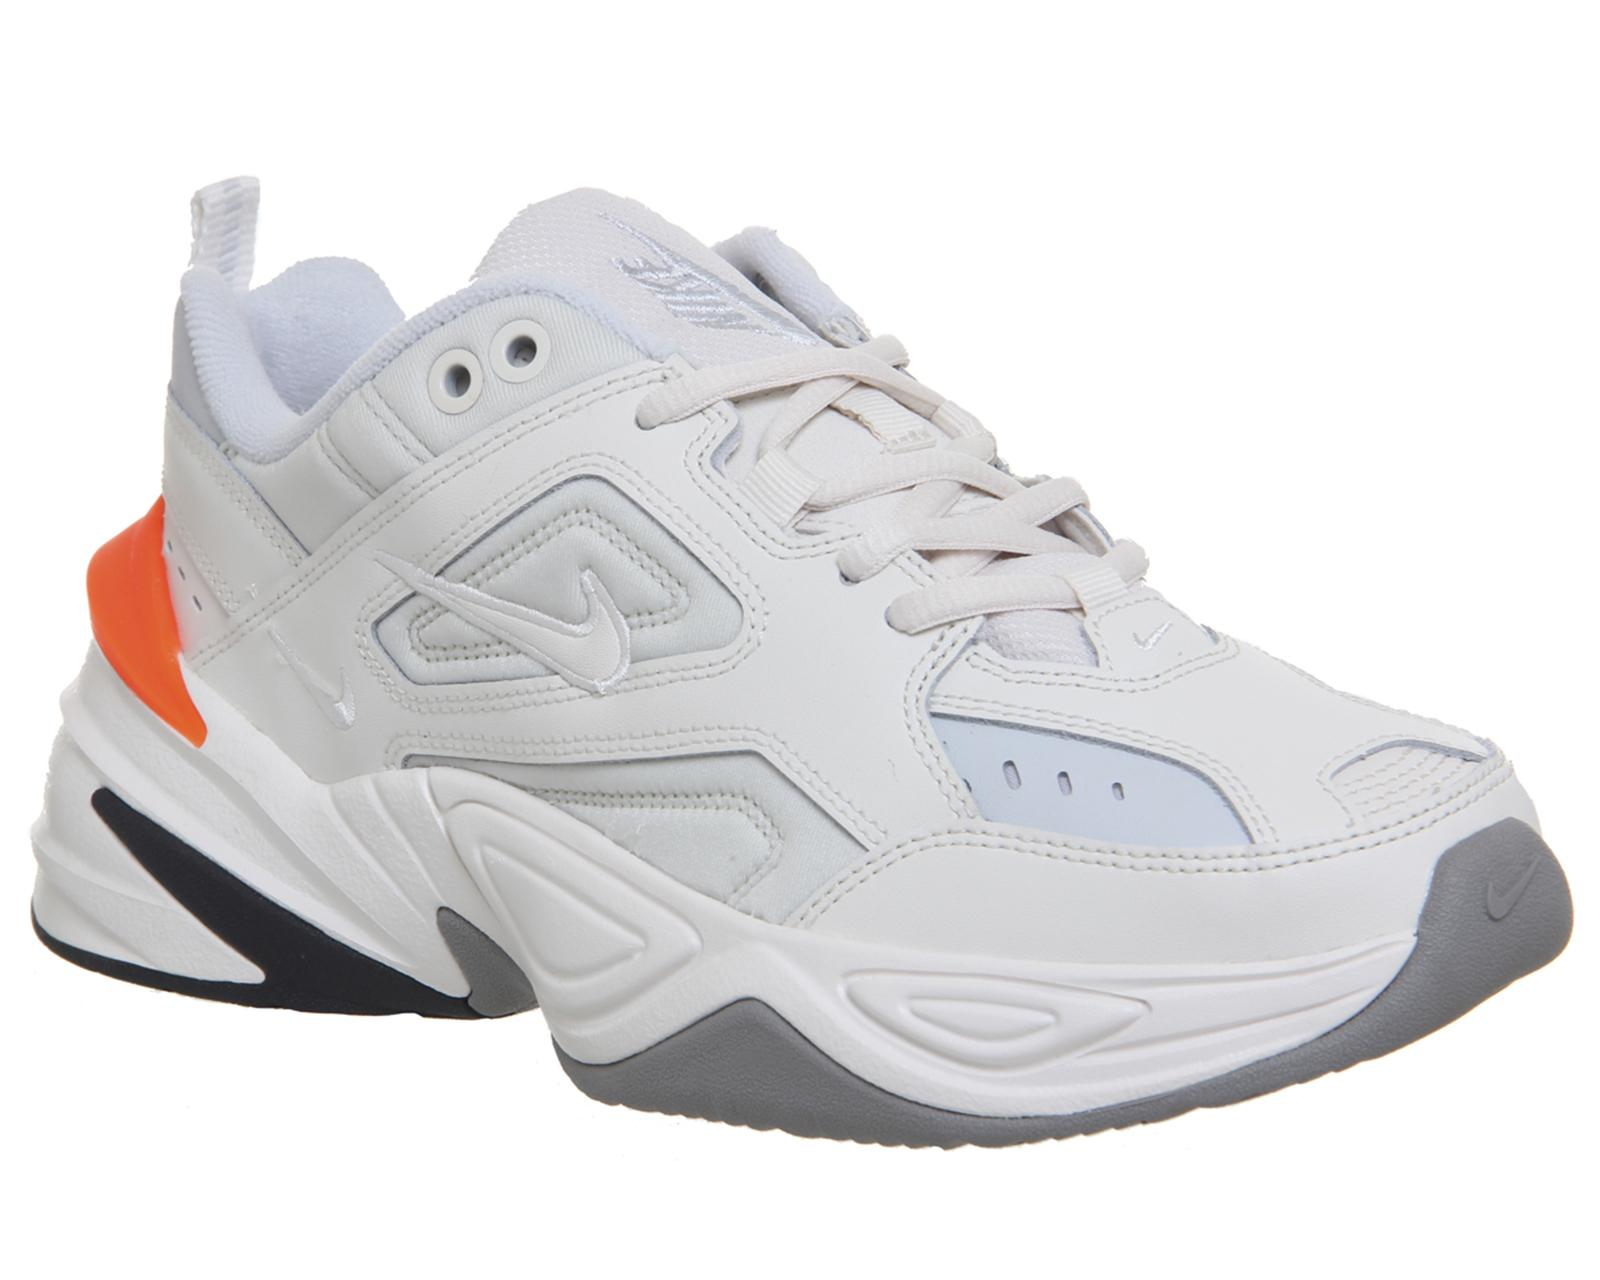 outlet store 2a5e0 d2e4b Nike M2k Tekno Trainers in Gray - Lyst